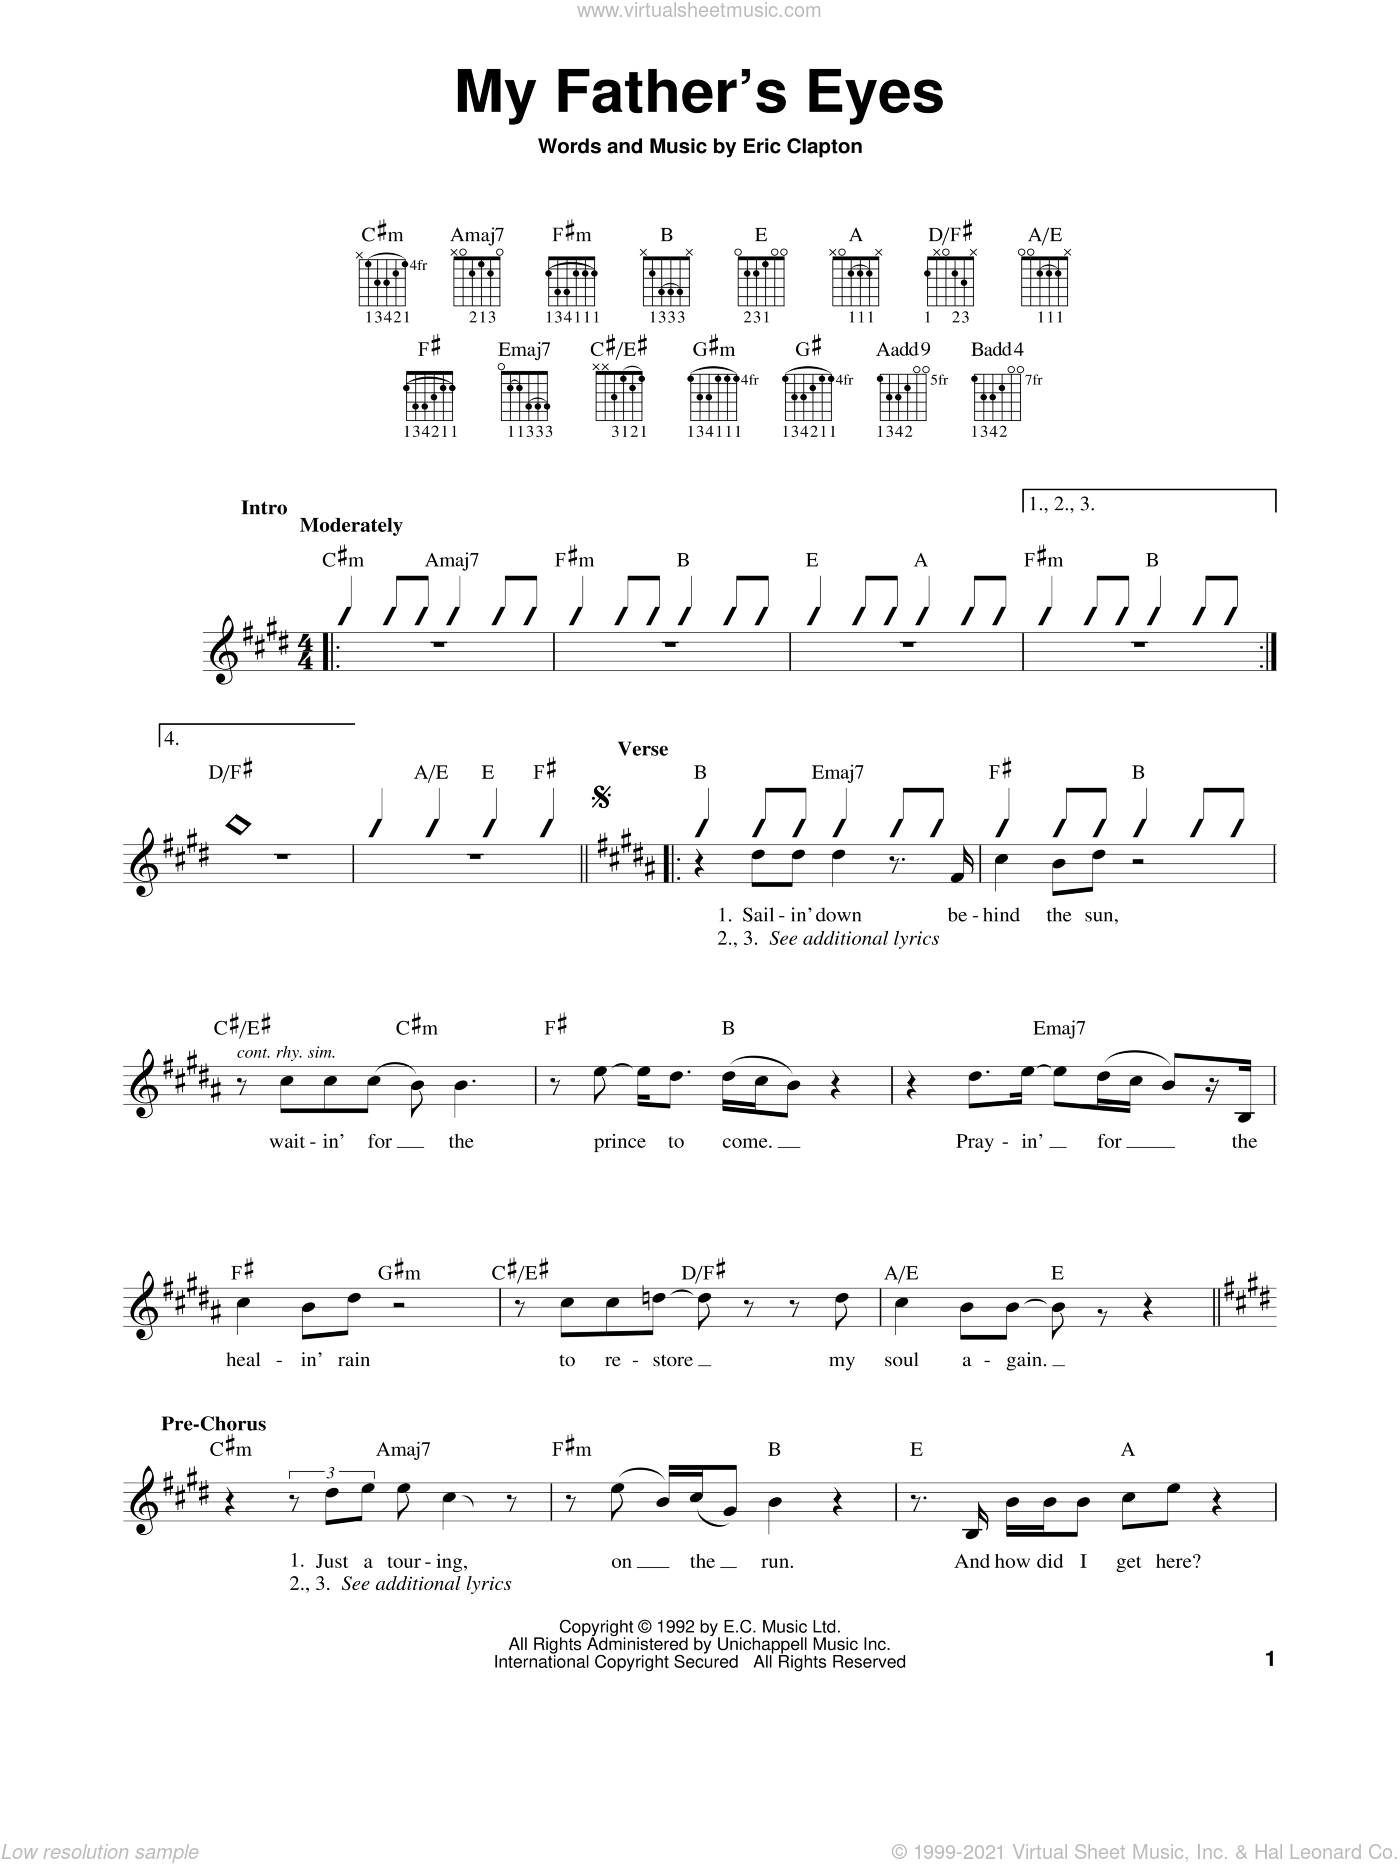 My Father's Eyes sheet music for guitar solo (chords) by Eric Clapton. Score Image Preview.